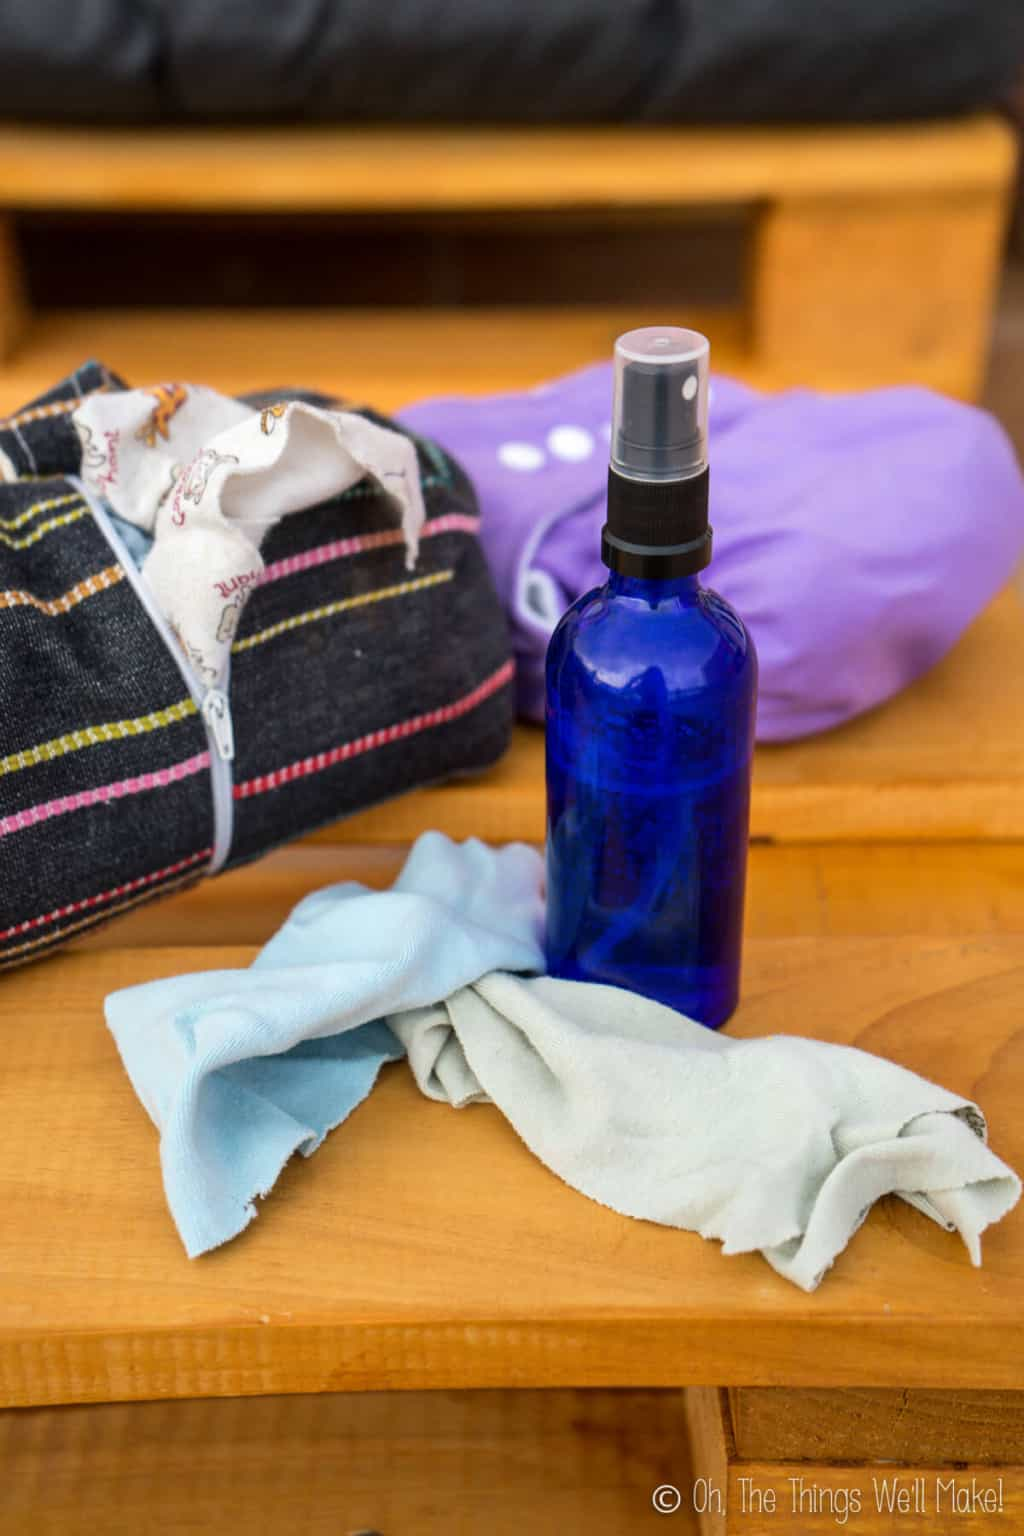 A small blue glass bottle with a DIY baby wipe solution next to a black with colorful stripes fabric dispenser filled with homemade cloth wipes and a purple cloth diaper at the back.